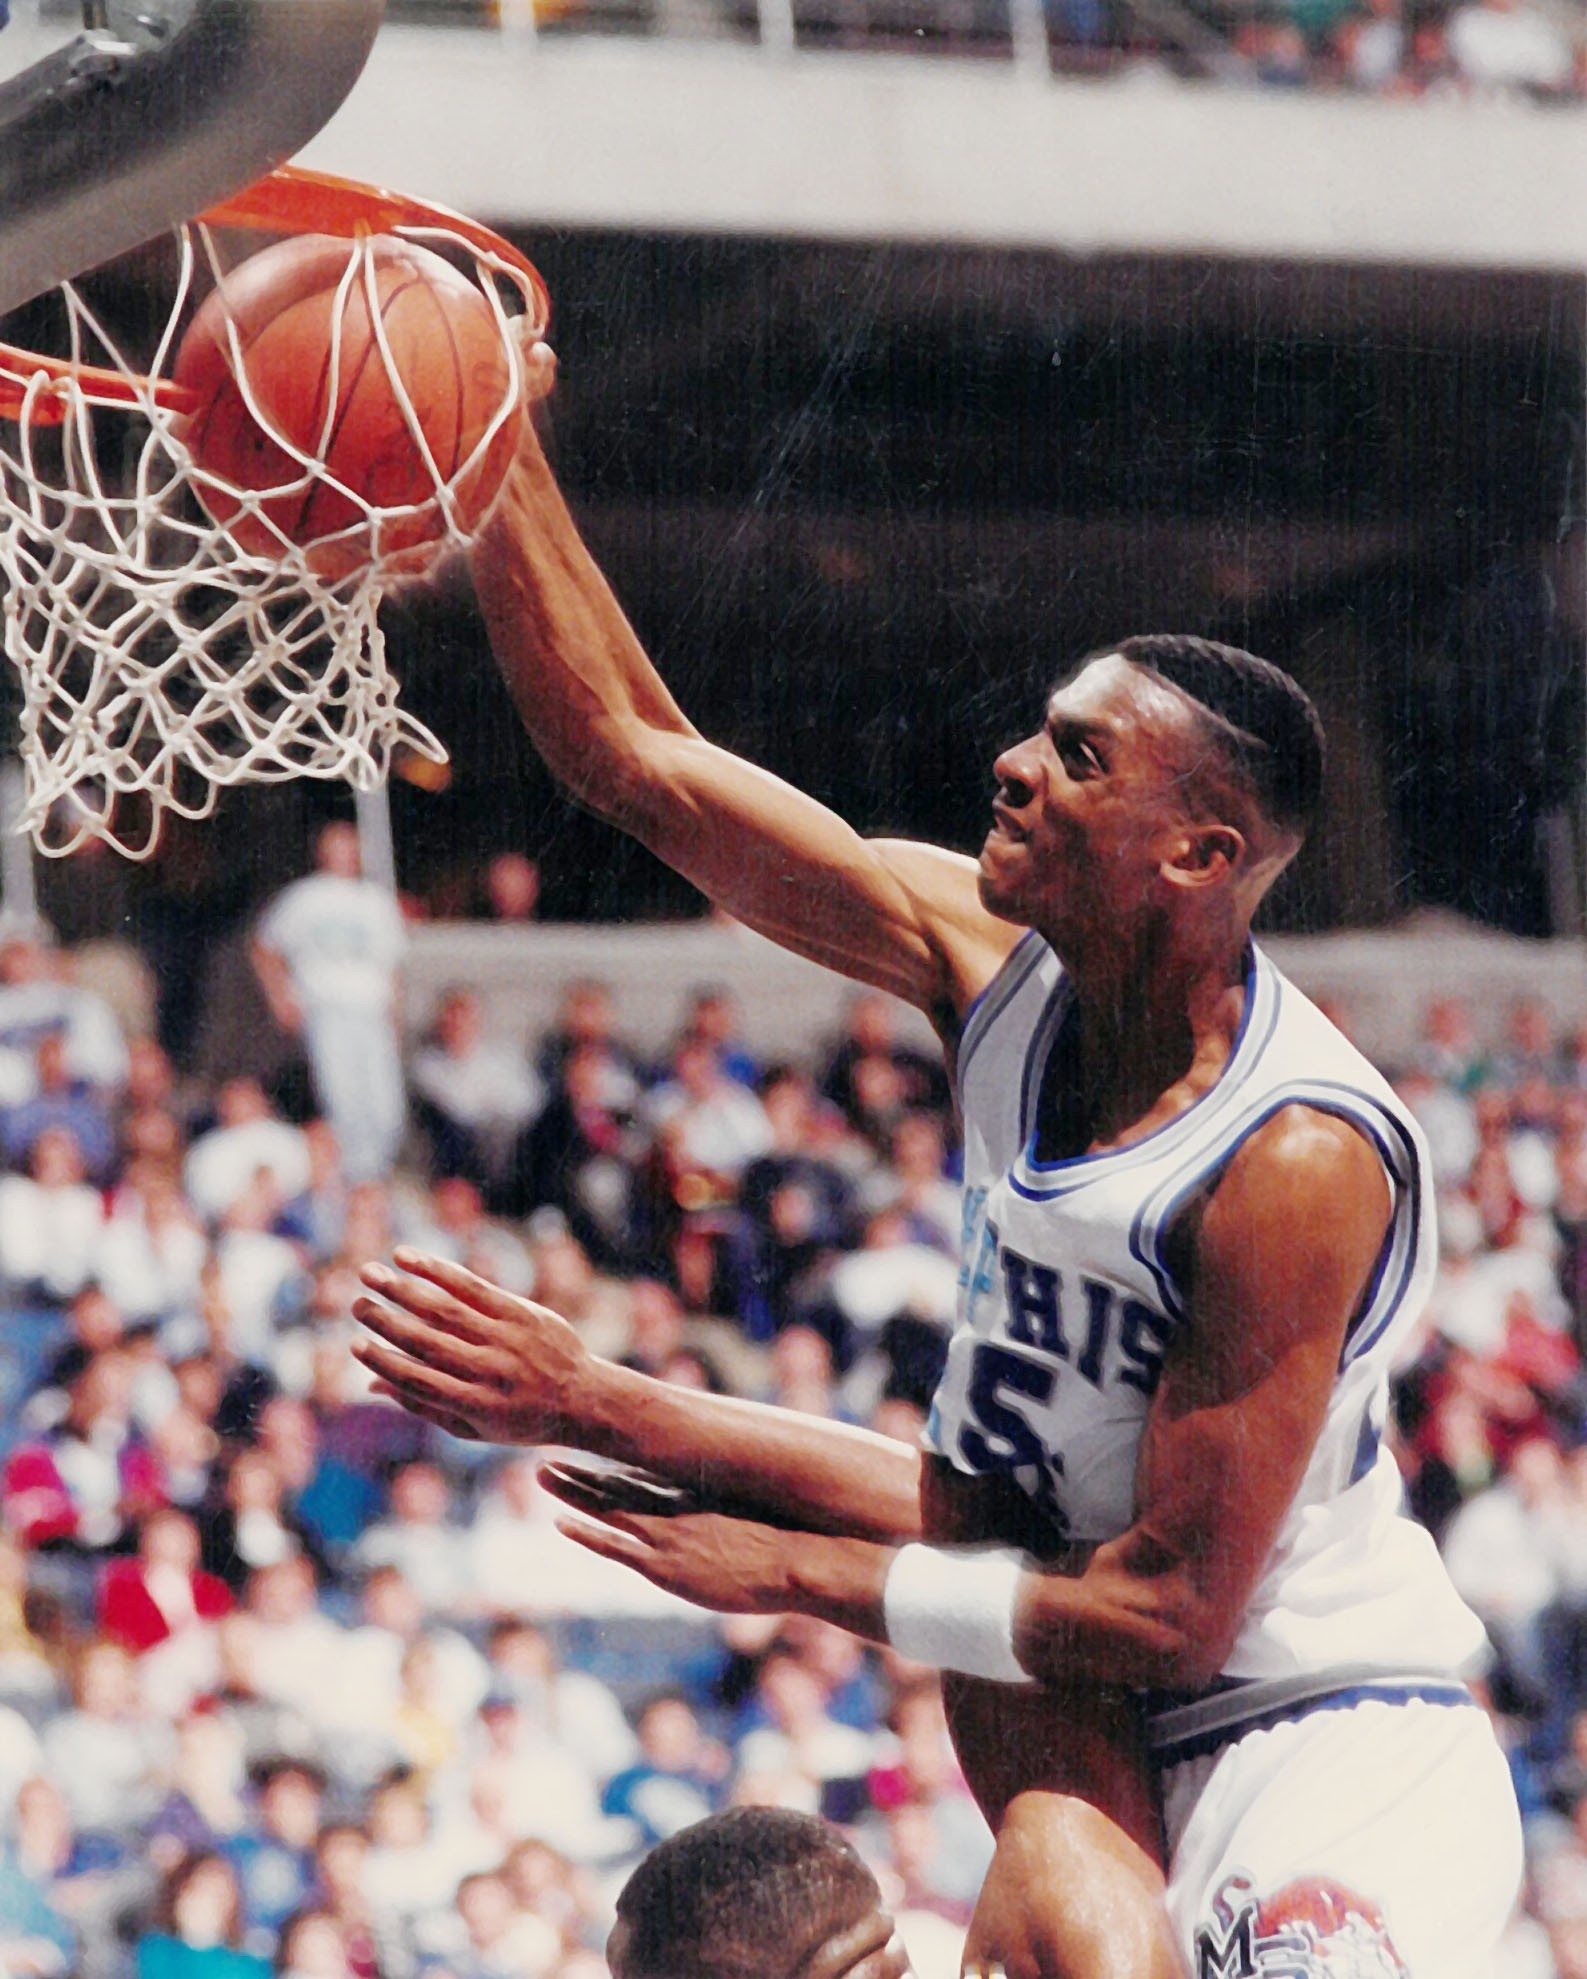 If Pastner Leaves Should Penny Hardaway Coach the Tigers